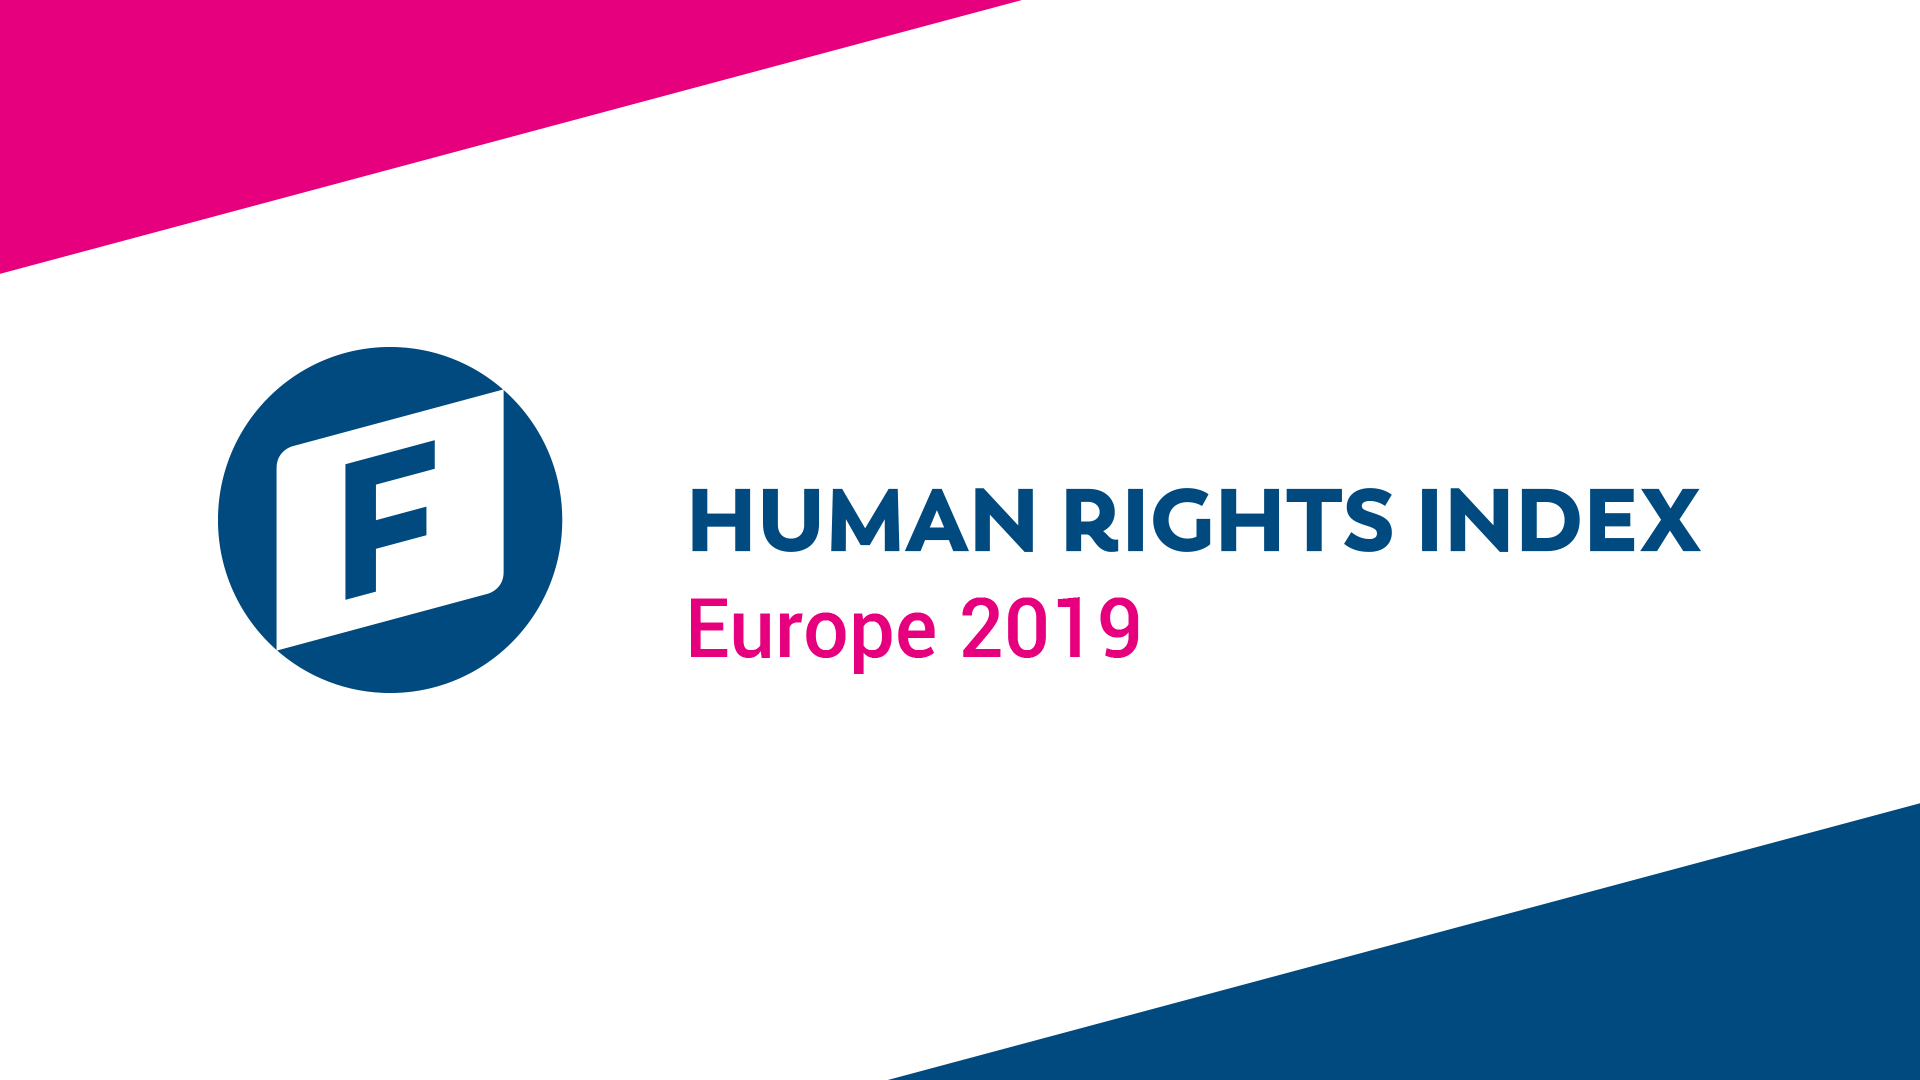 Human Rights Index 2019 is out!